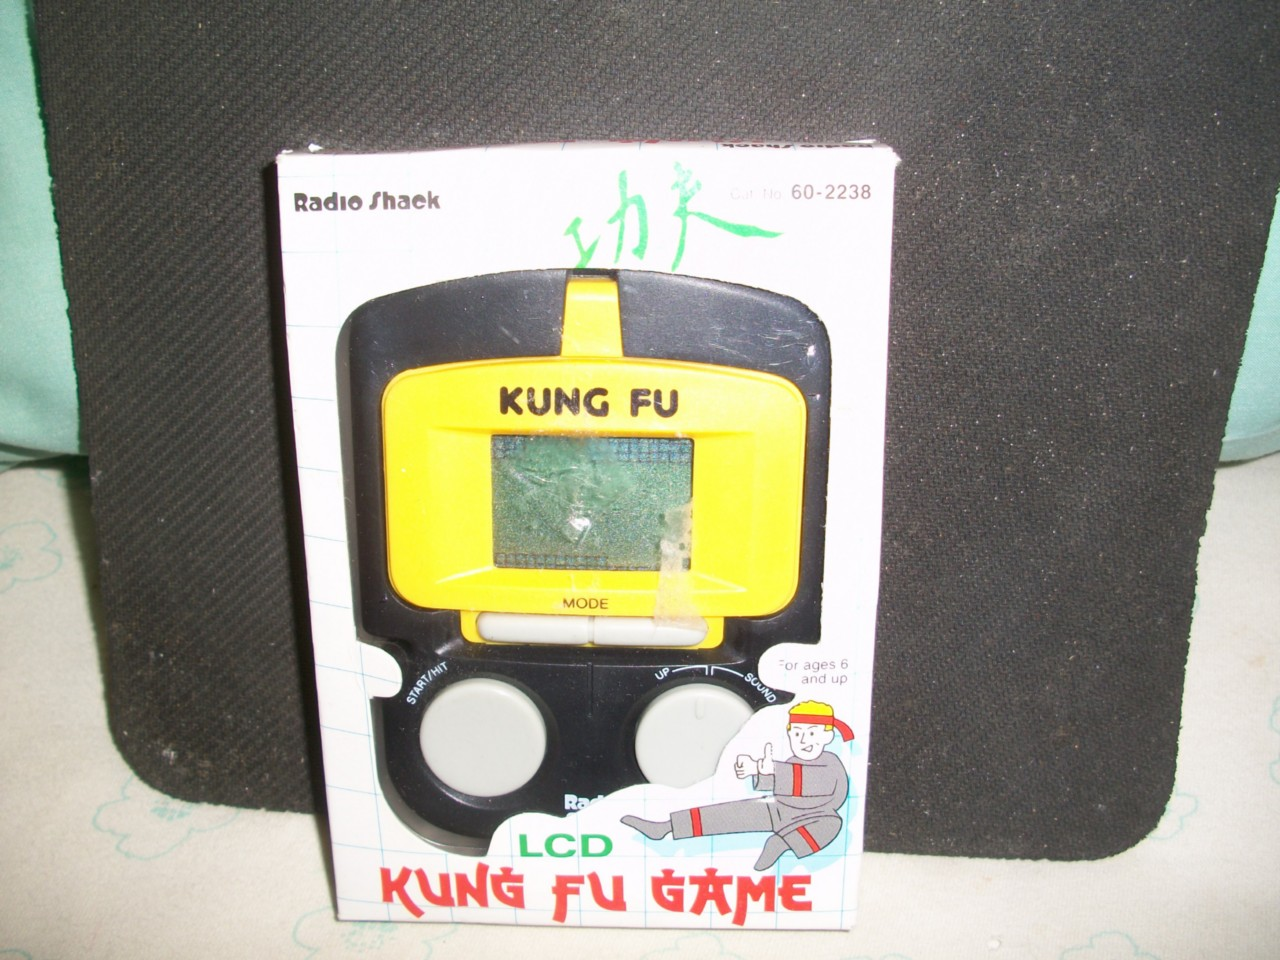 Radio Shack Toys For Boys : Handheld game lcd kung fu radio shack collectible